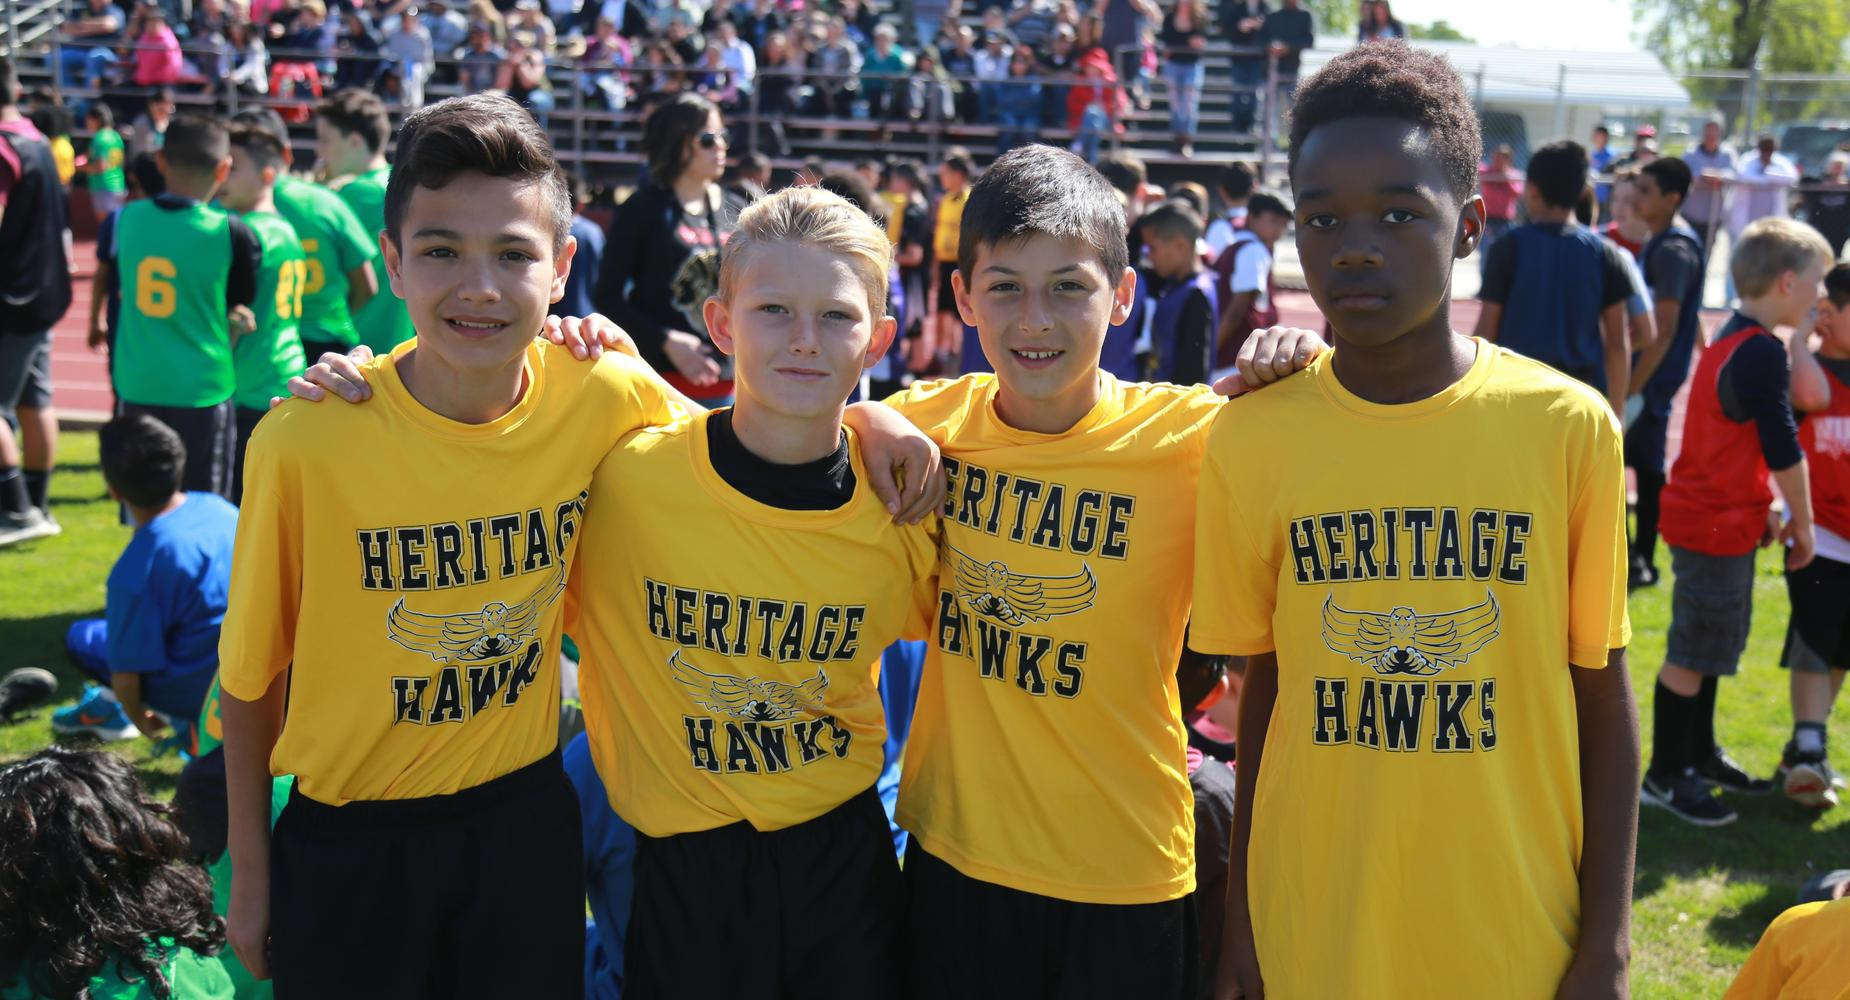 Group of 4 boys at track meet